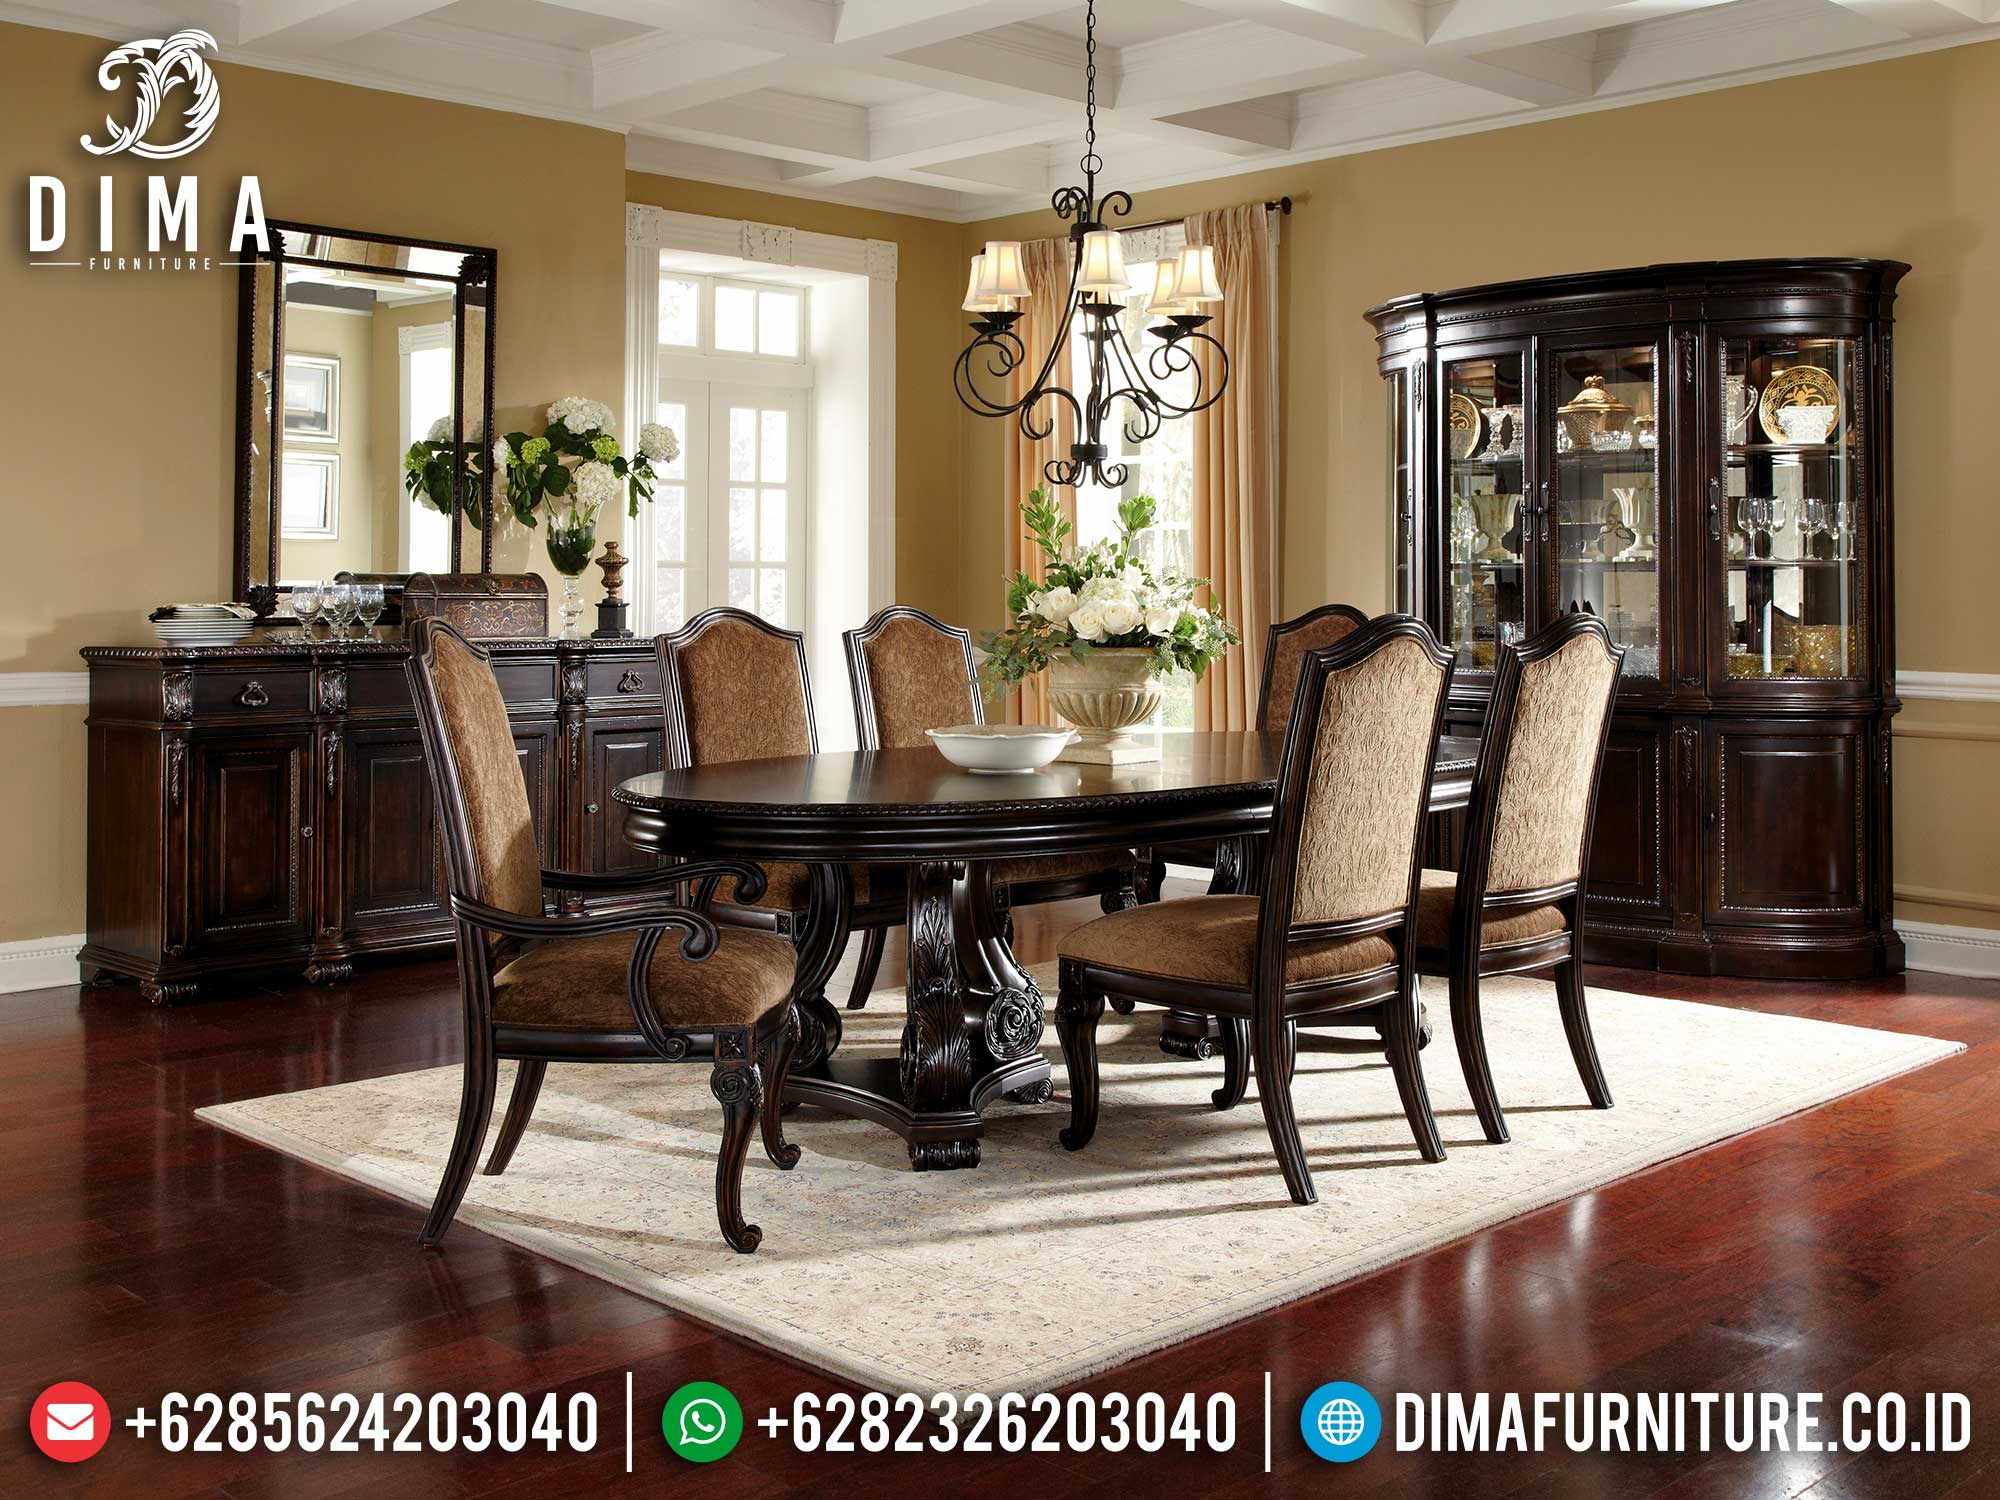 Meja Makan Jati Jepara Klasik Natural Dark Brown Luxury Carving Mm-1009